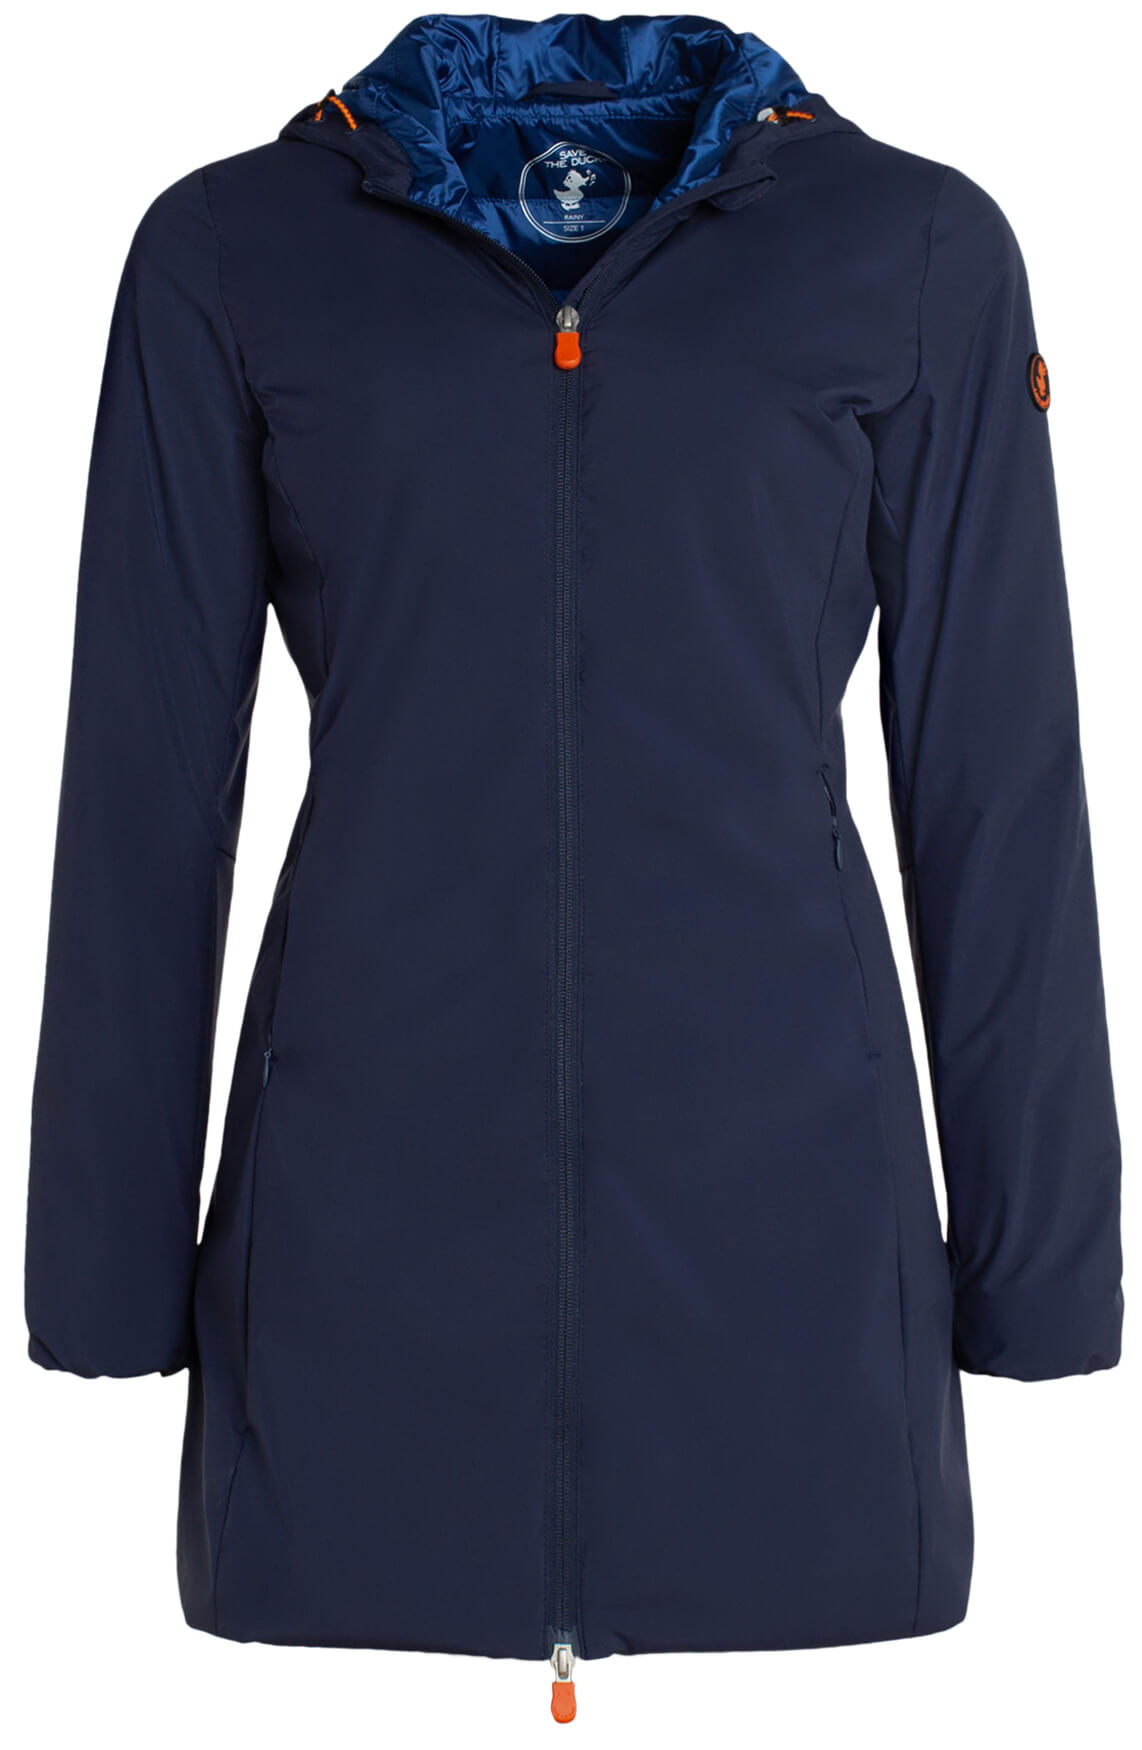 Save the Duck Dames Windbreaker met matte look Blauw